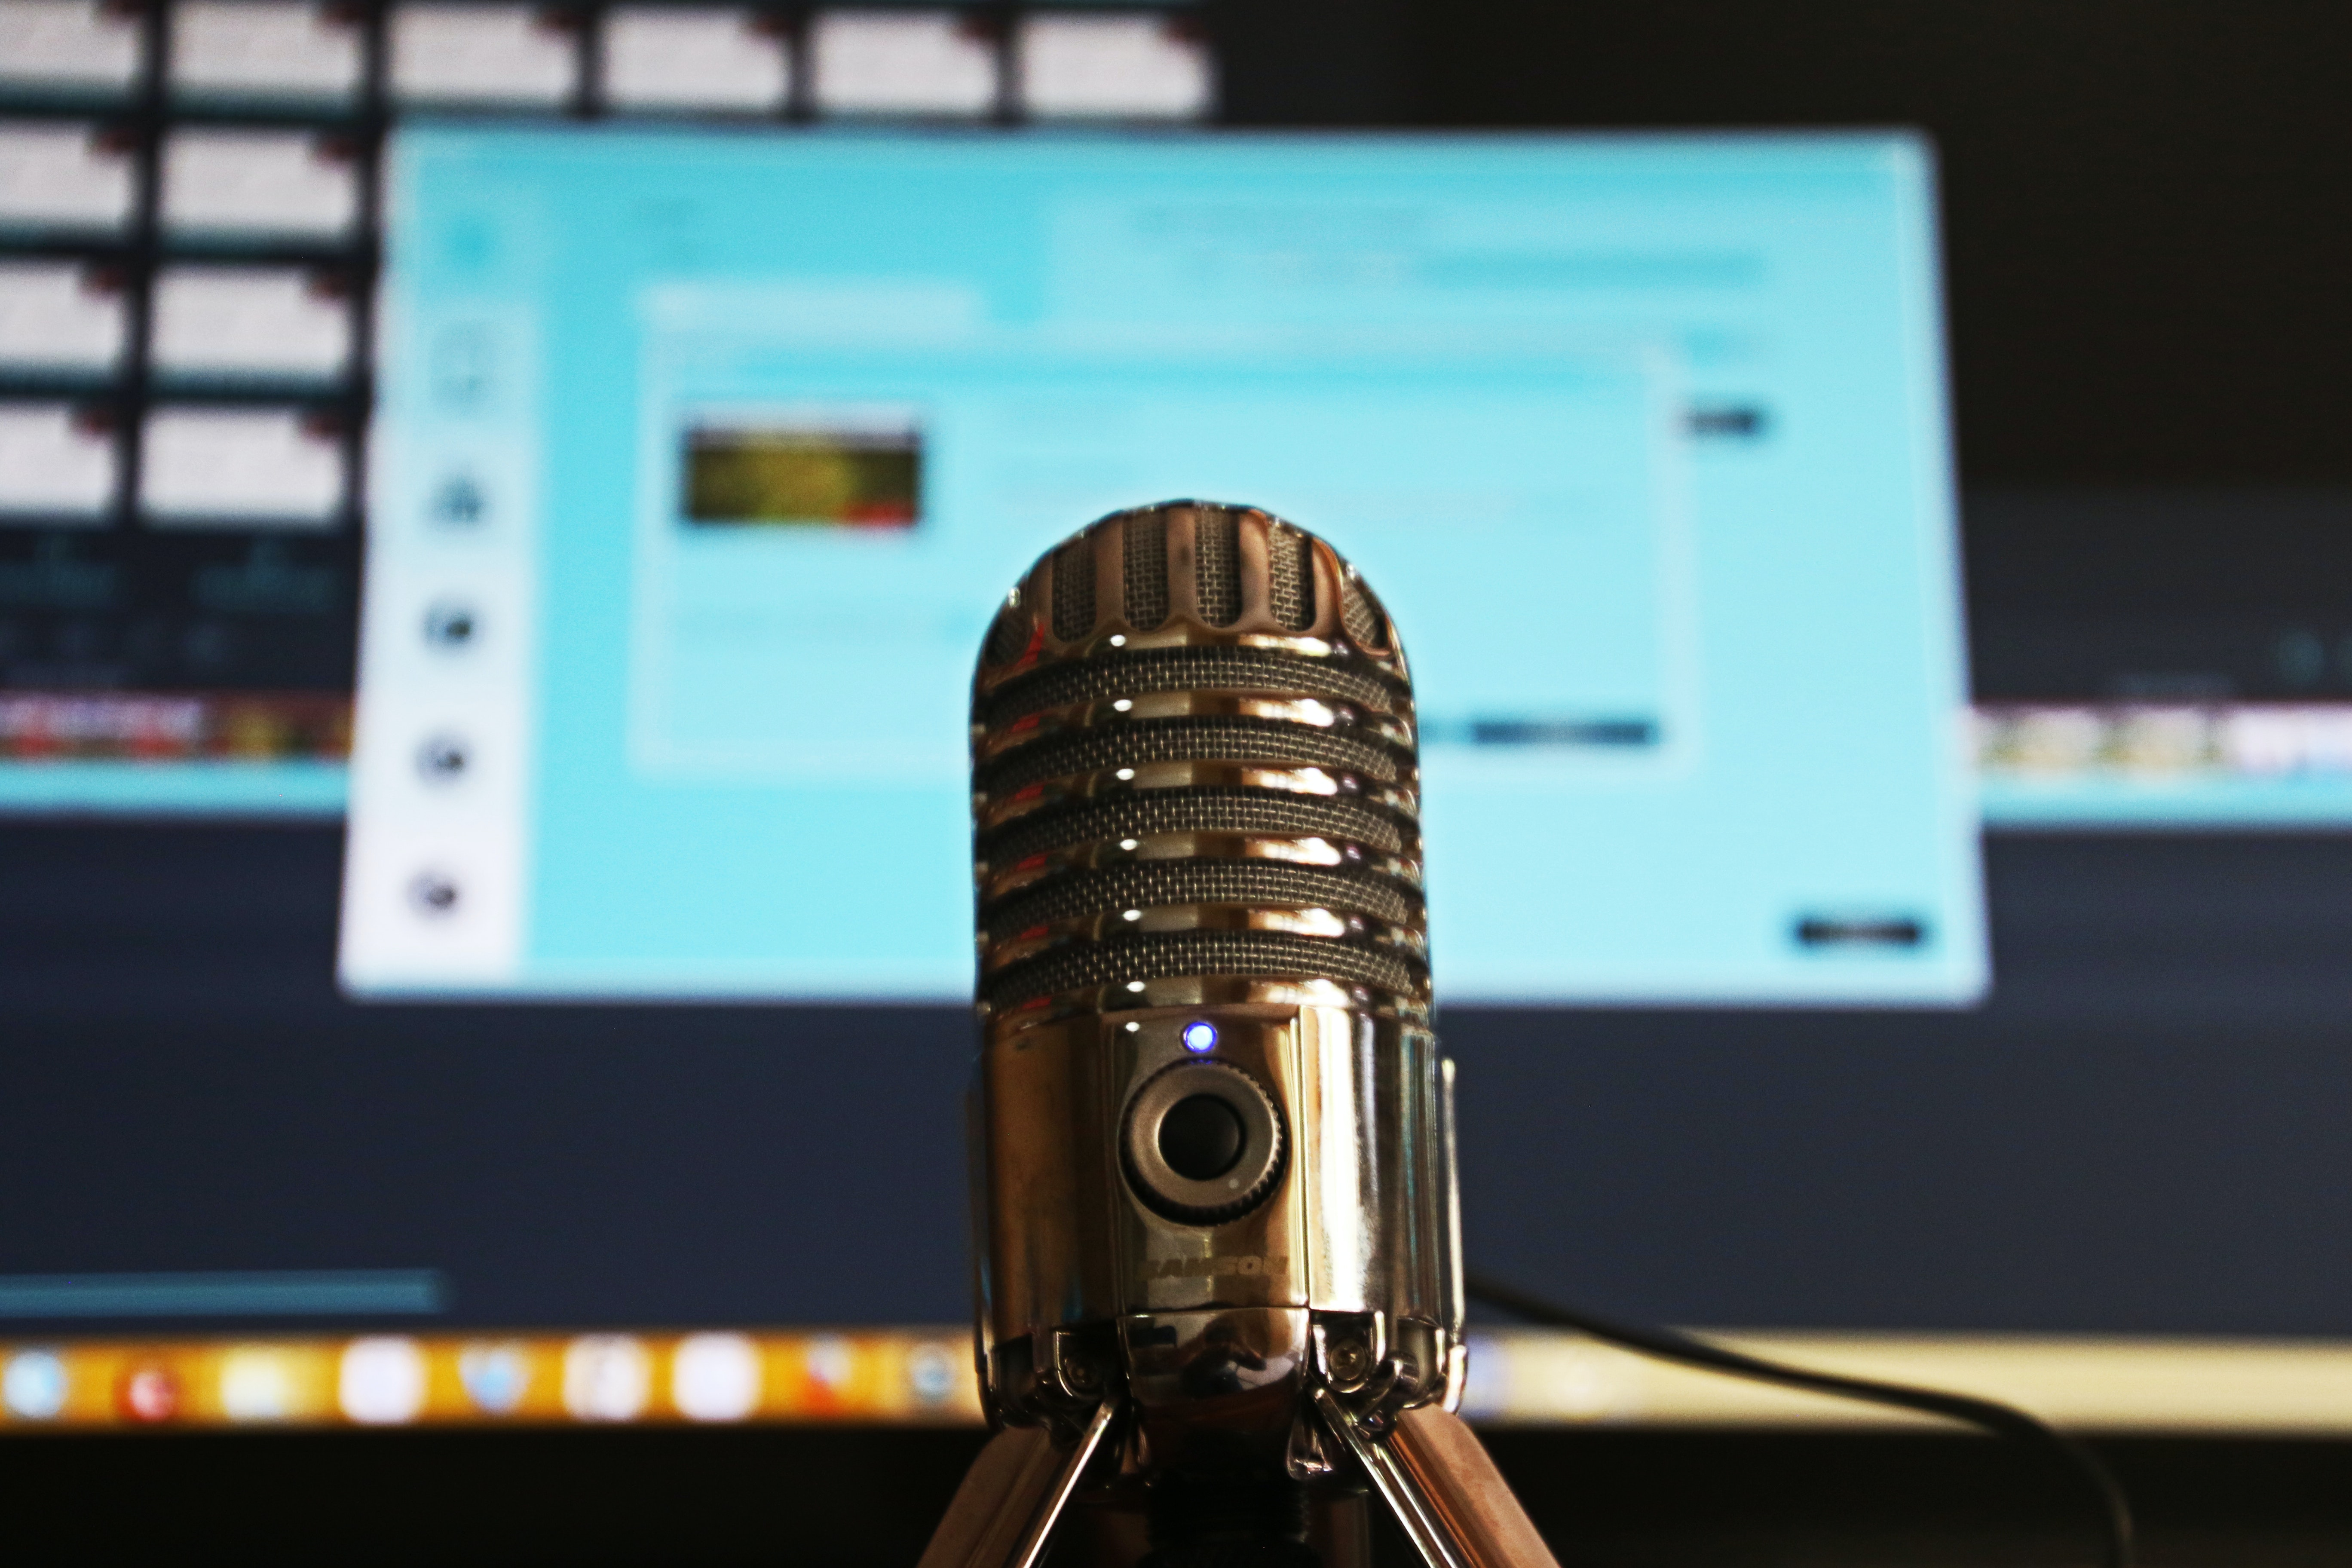 Podcast microphone